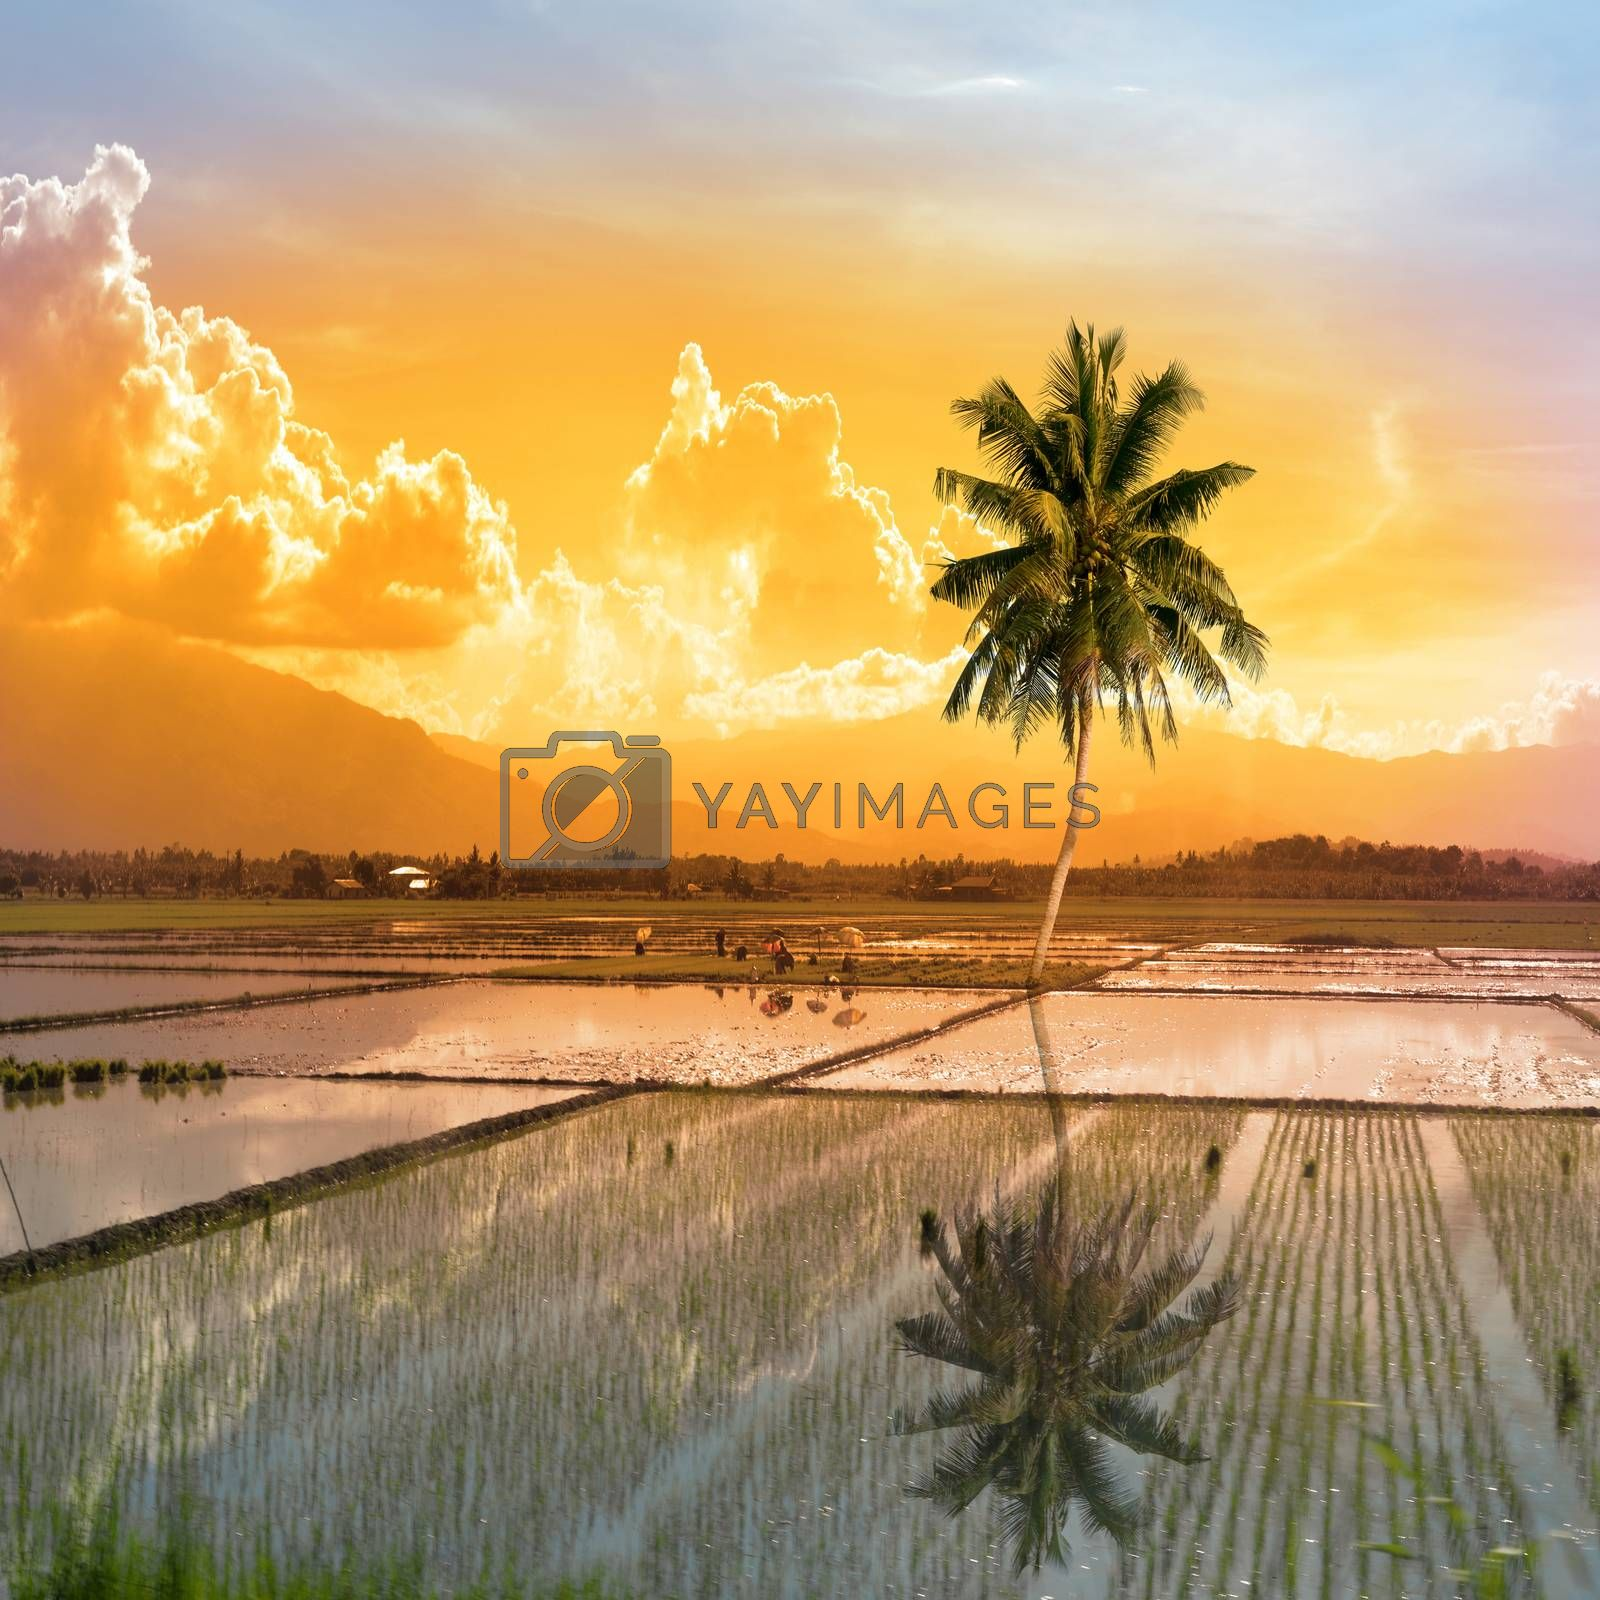 single palm tree in a paddy field on the Philippine island of mondoro